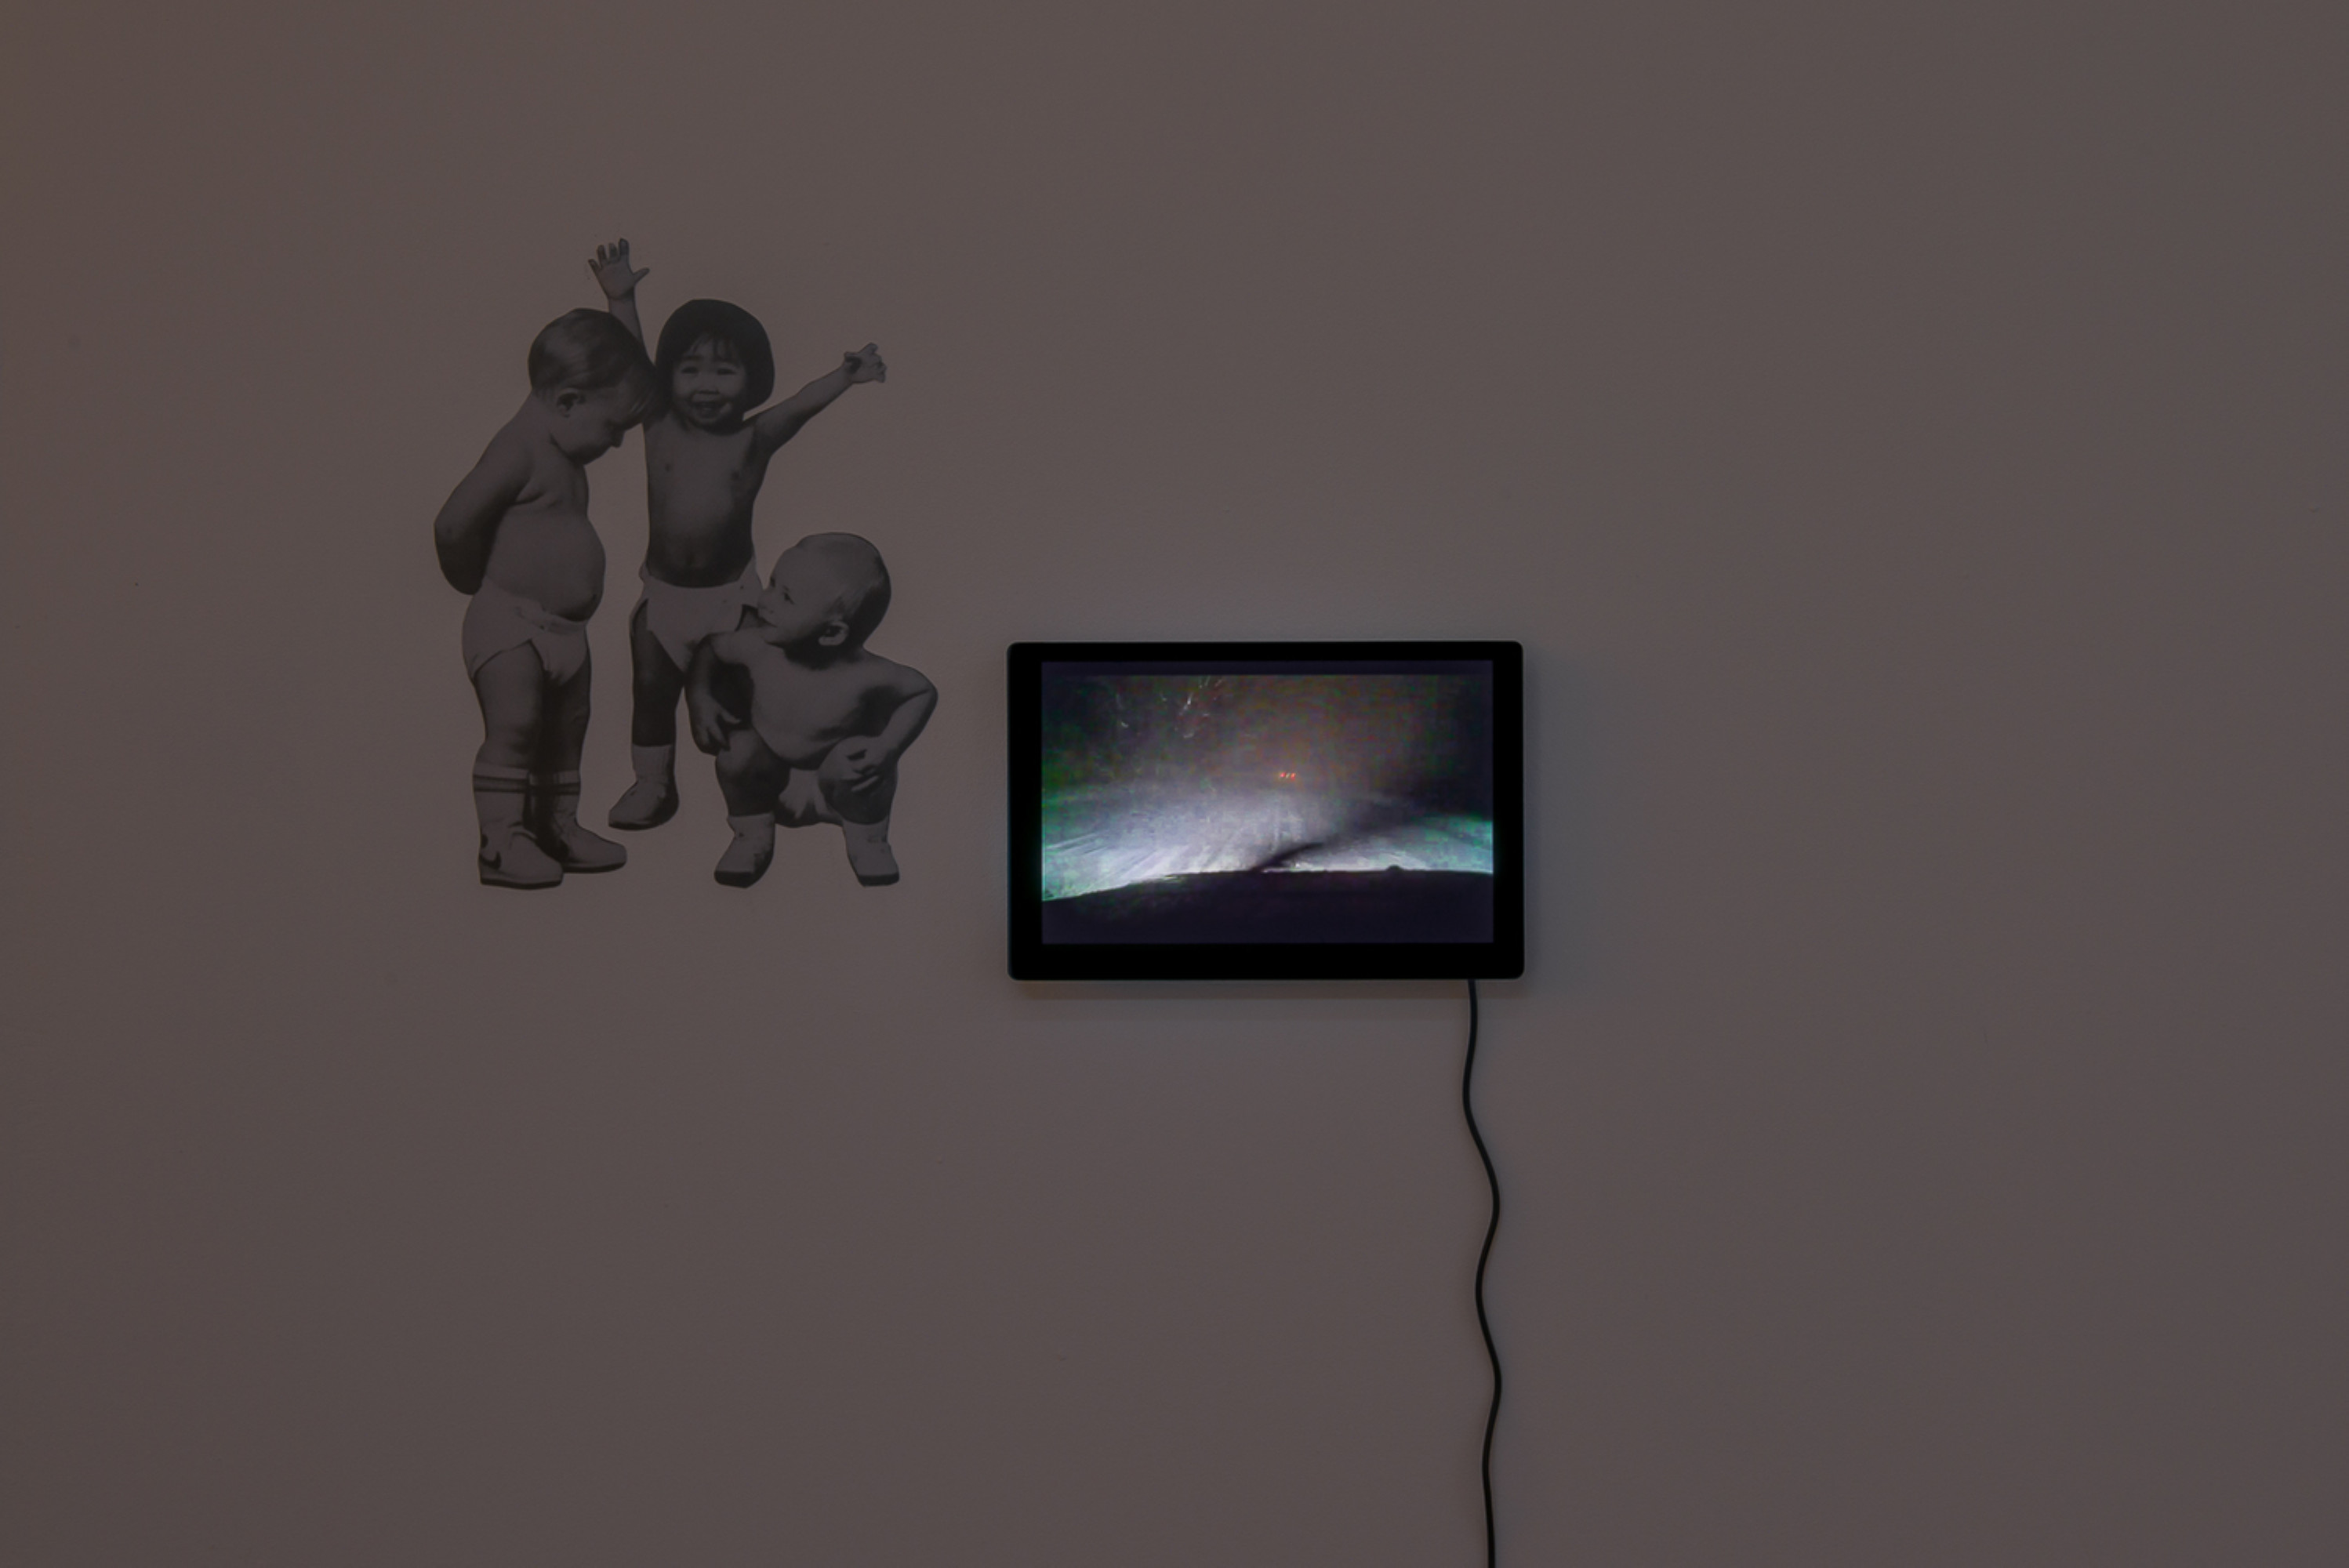 Half-lit World, Stefano Faoro: Untitled, video, digital print on pvc, 2020.